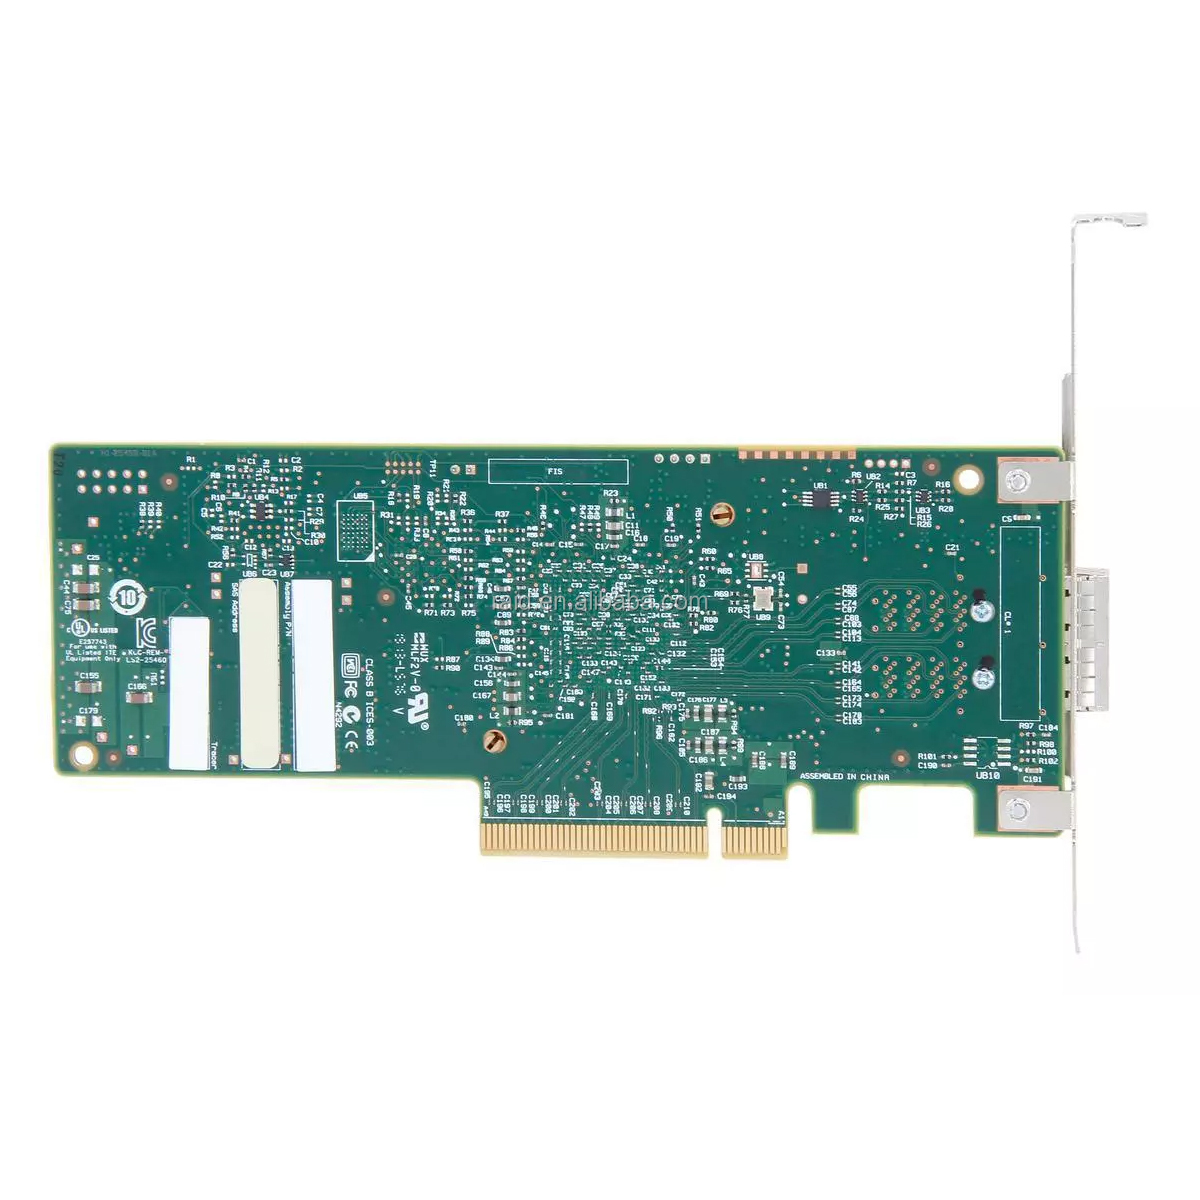 LSI SAS 9300-8e 8-port 12Gb//s SATA+SAS pci-e3.0 Host Bus Adapter US seller